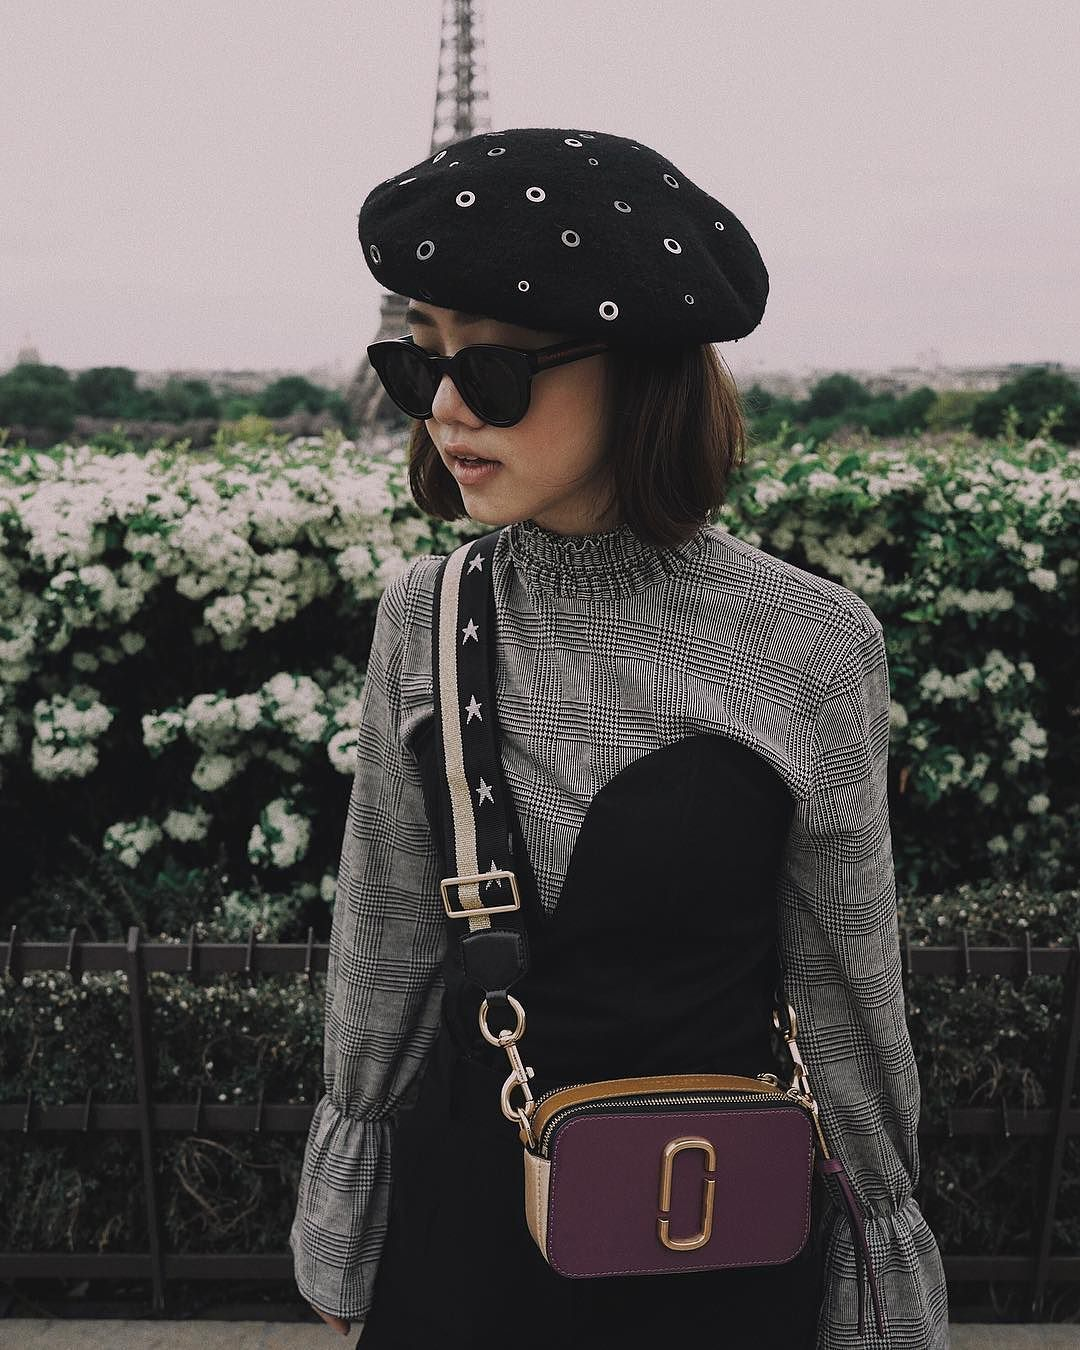 dbeb05ae697b Eli Elvina wearing our Marc Jacobs Snapshot Bag